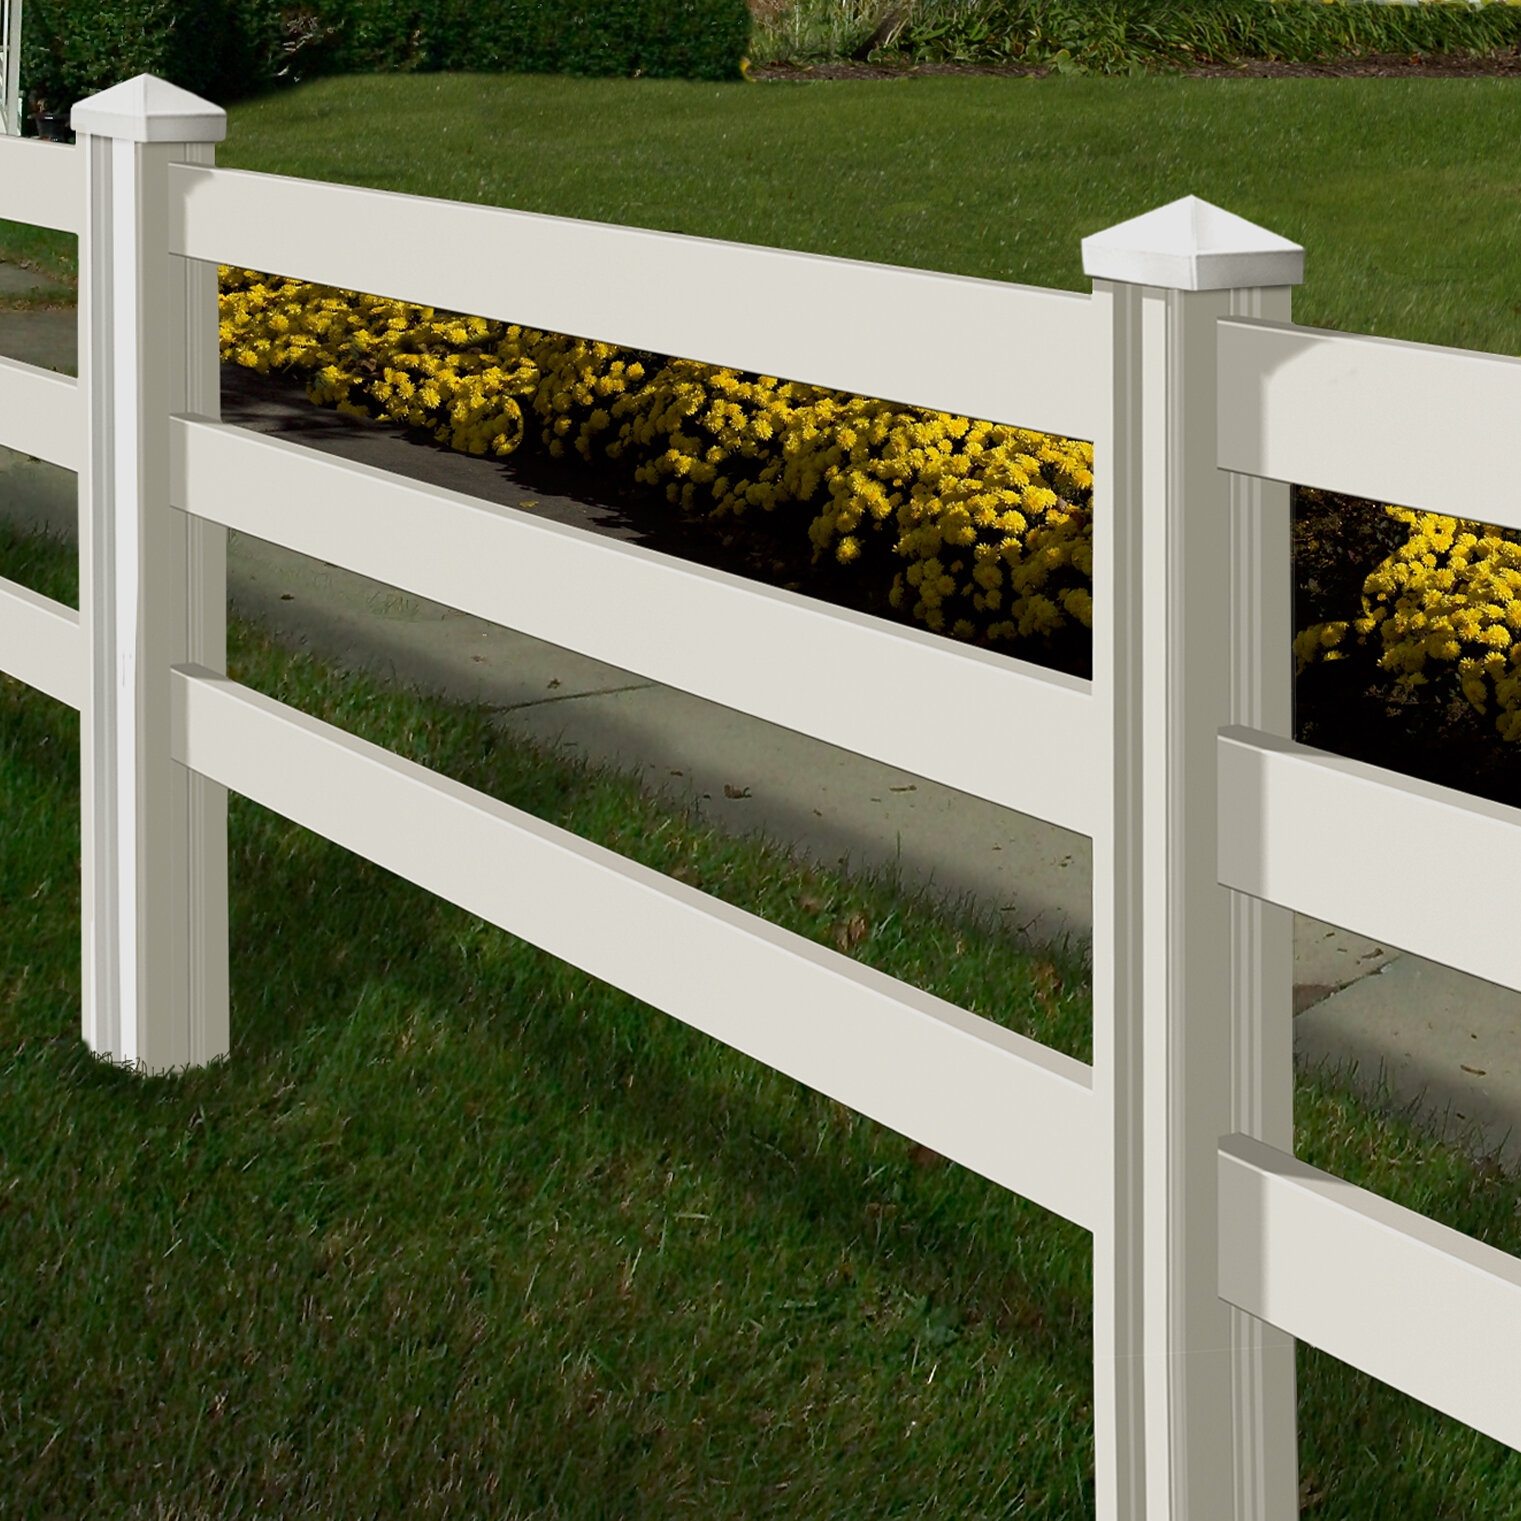 Wam Bam 4 ft. H x 7 ft. W Traditional Ranch Fence Panel & Reviews ...